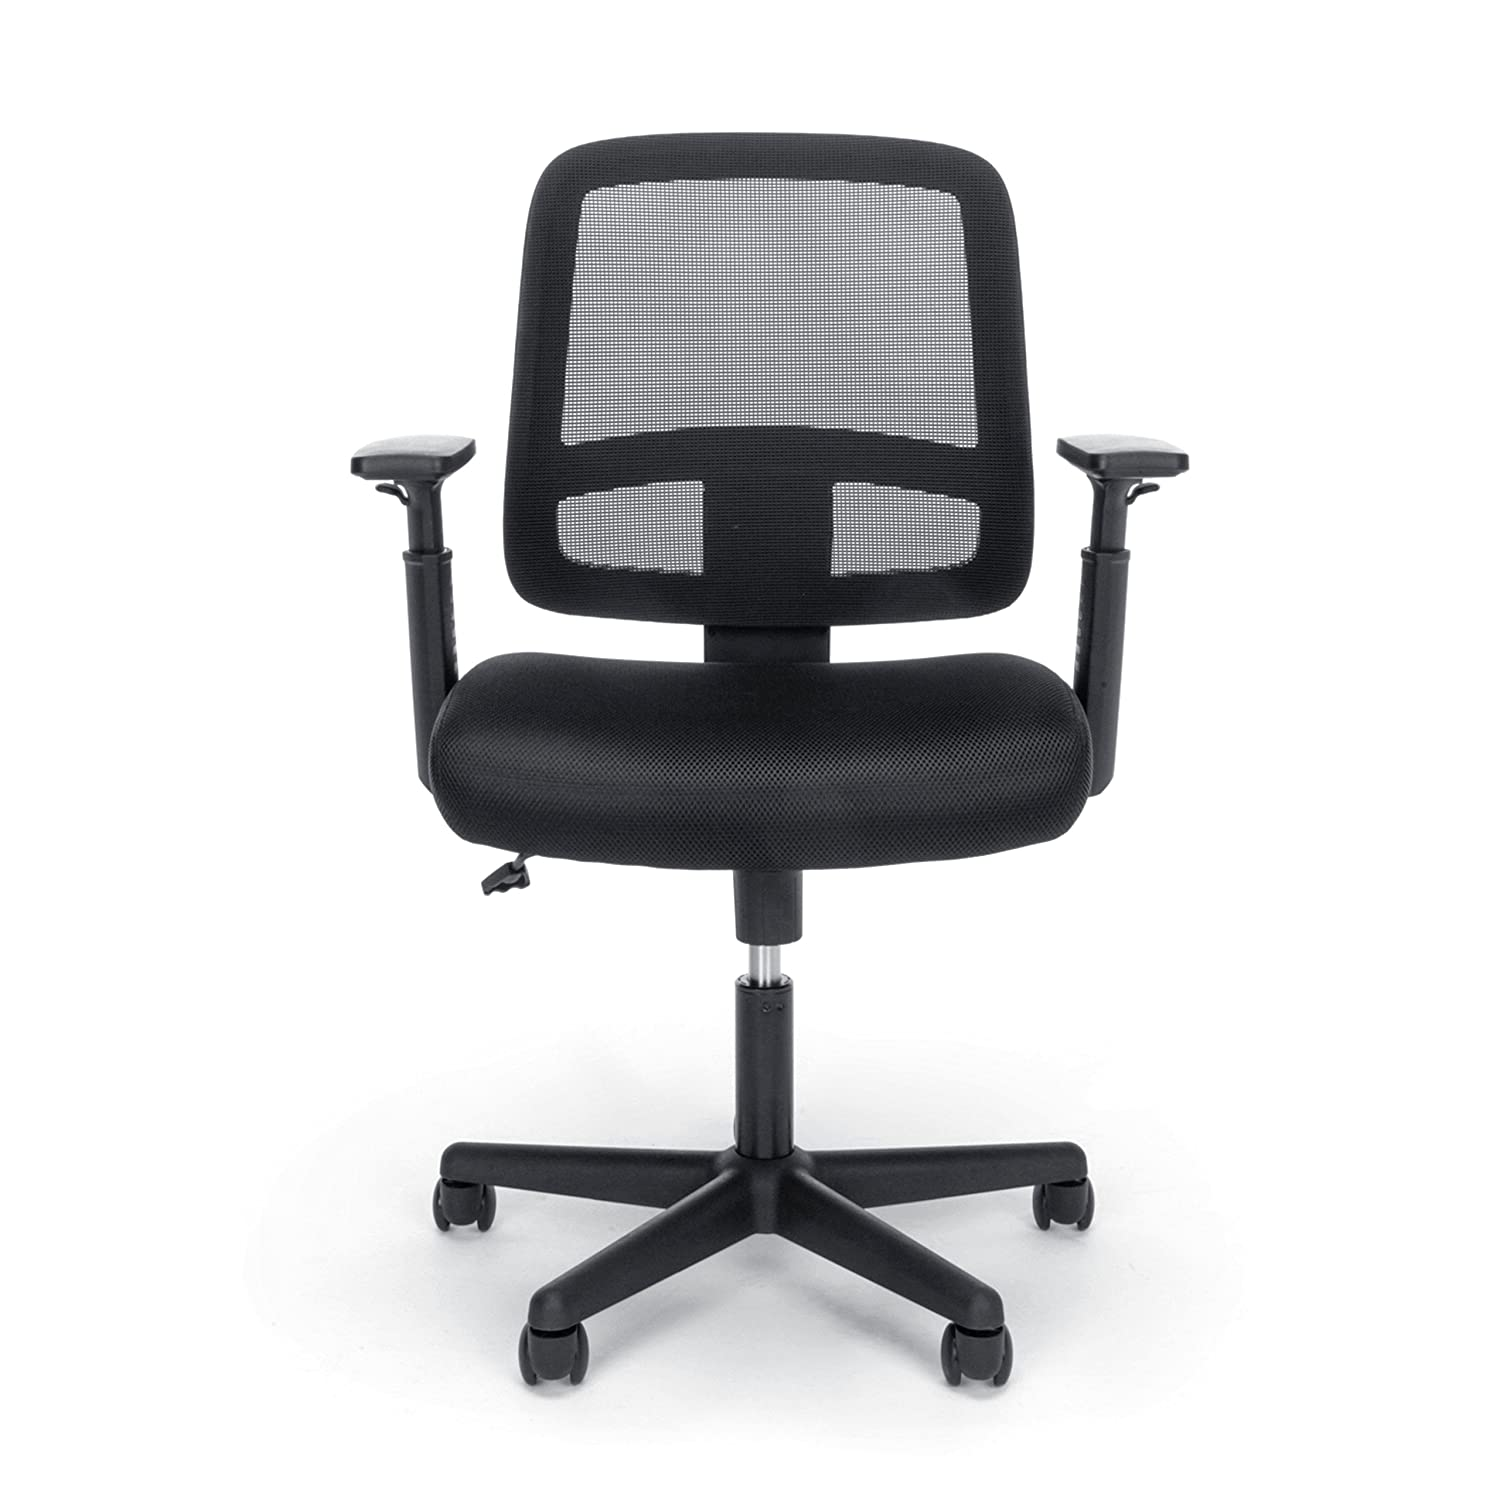 Essentials Mesh Task Chair – Ergonomic Computer Office Chair with Adjustable Arms, Black E3035-BLK